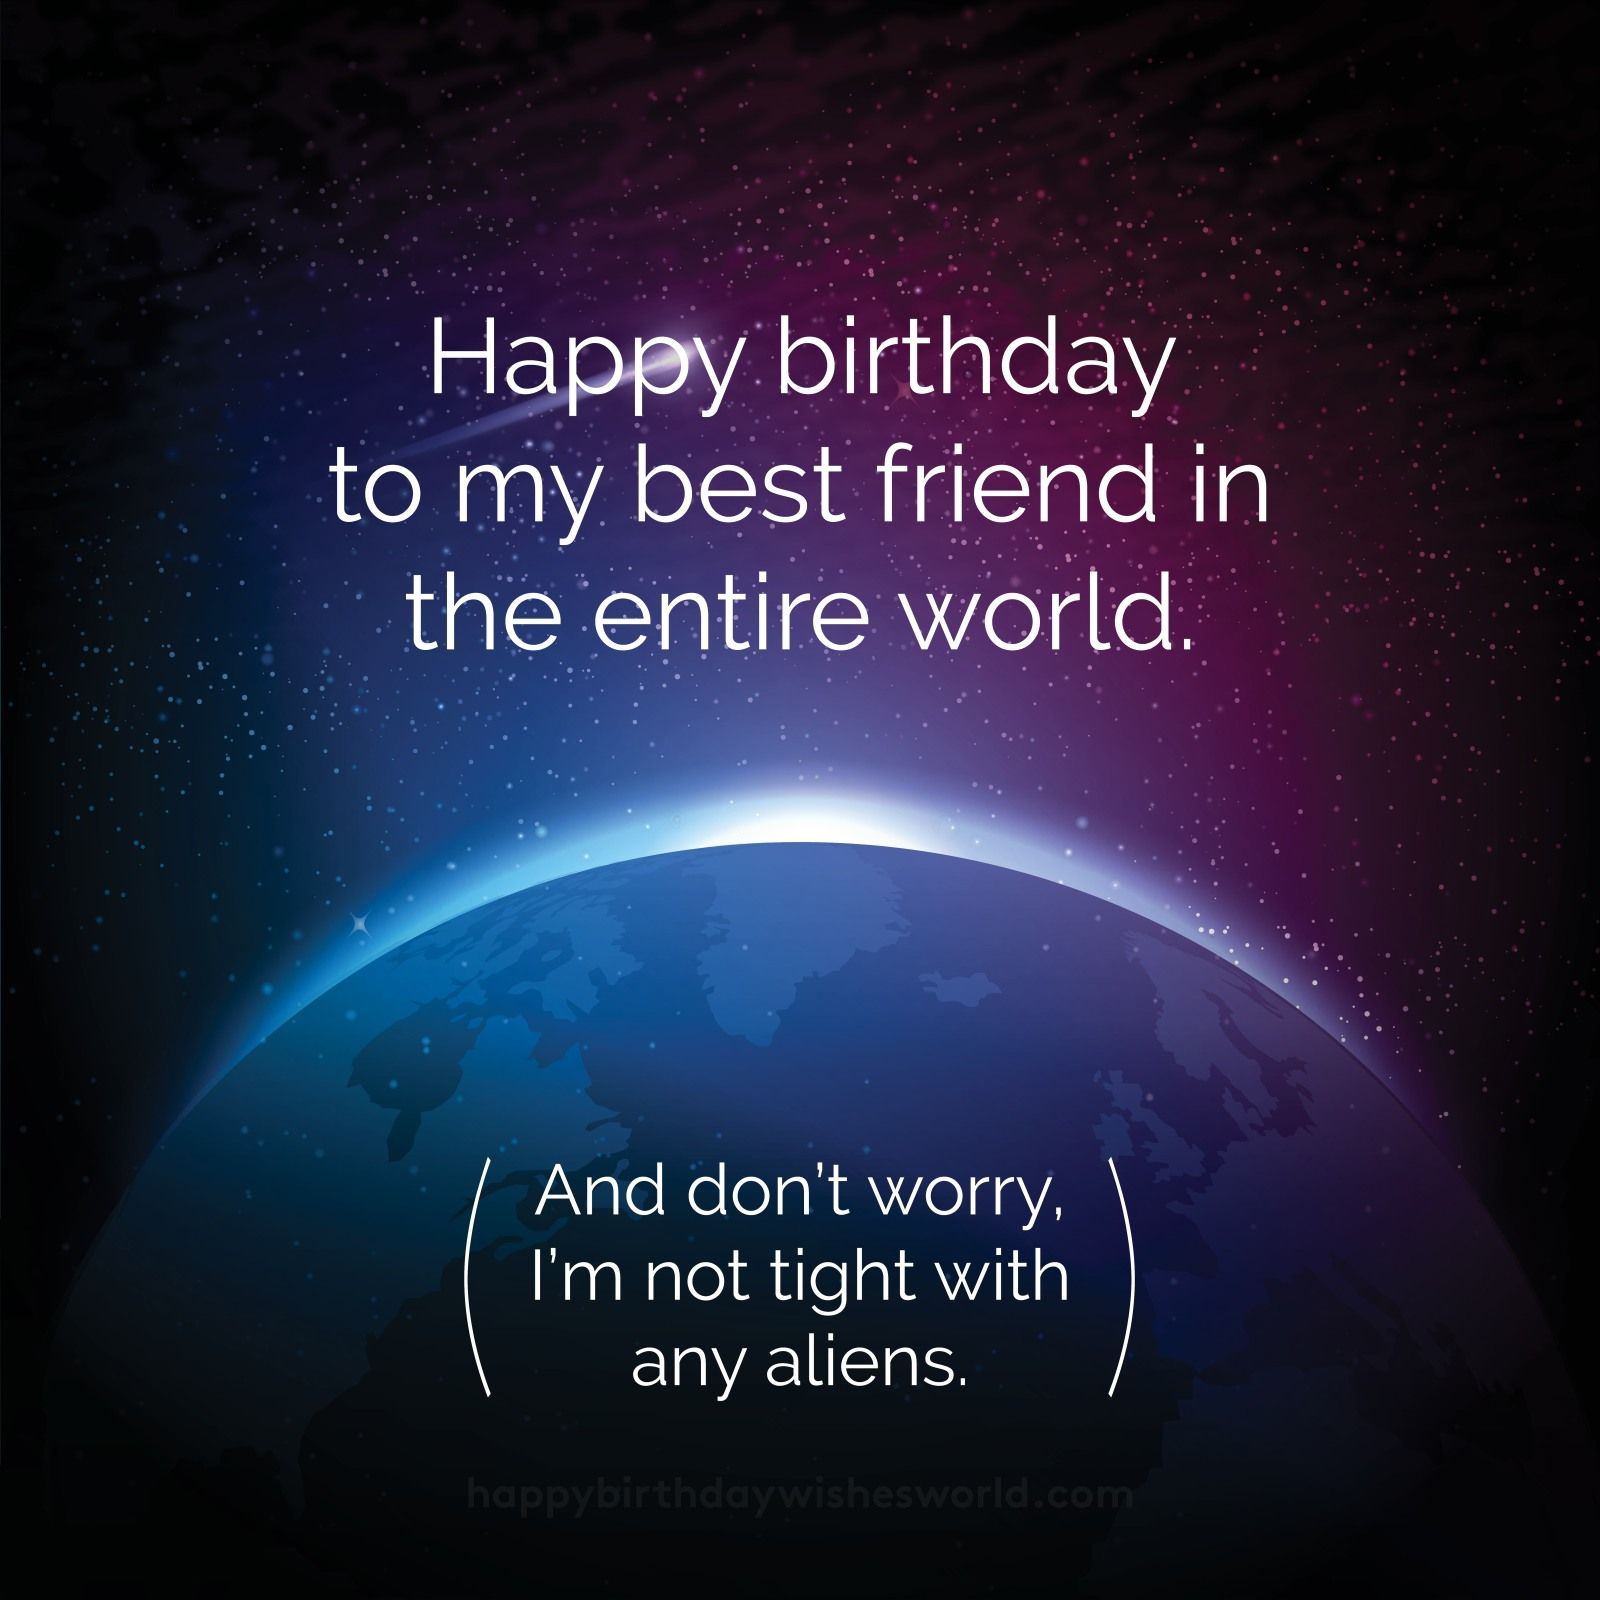 Happy Birthday To My Best Friend In The Entire World And Don T Worry I M Not Tight W Happy Birthday Wishes Images Happy Birthday Wishes Happy Birthday Images